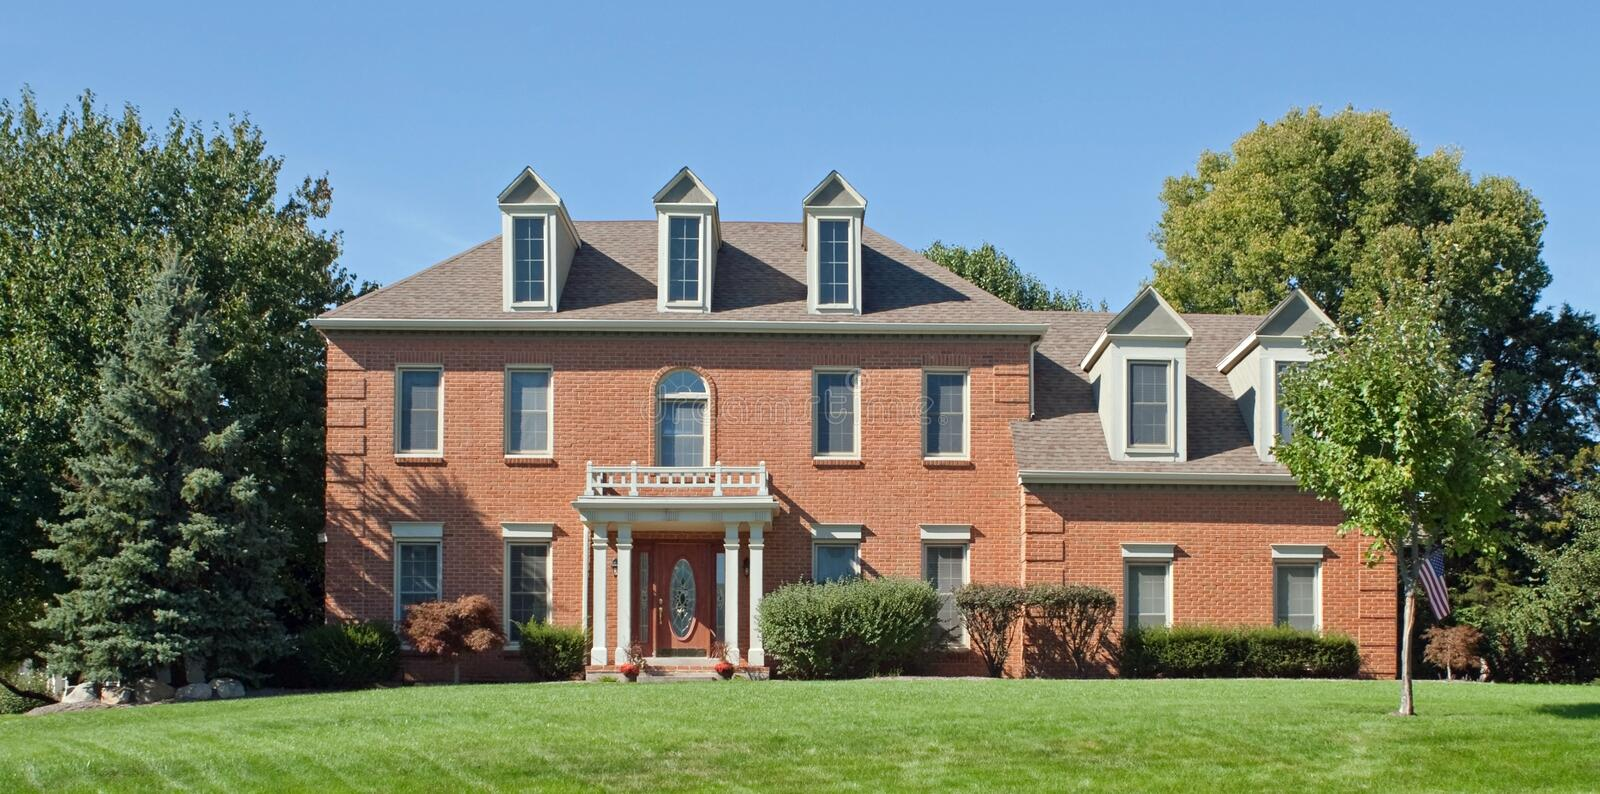 Colonial House. Large, Colonial-style house in Midwest suburbs stock photos